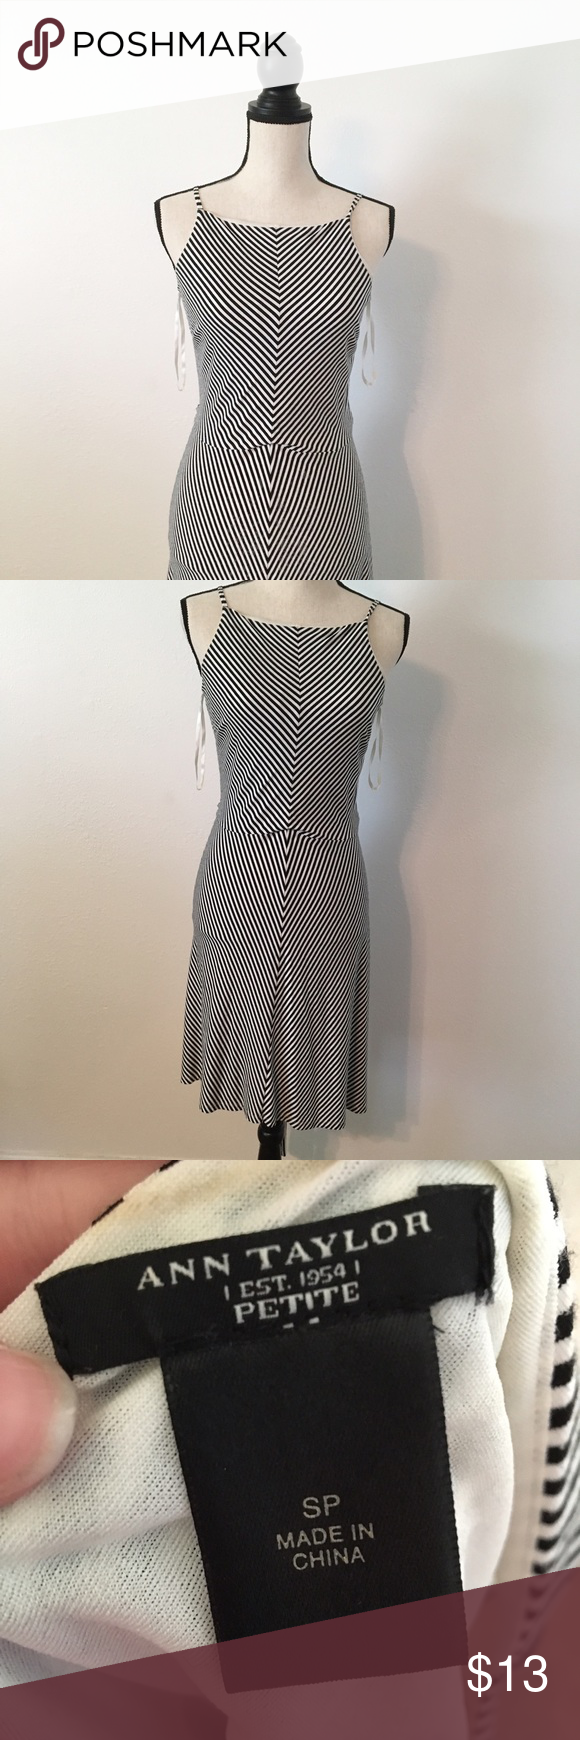 Ann Taylor Petite High Neck Dress 💚 NO TRADES 💚 💚 YES OFFERS ( bundle offers too) 💚 💚 NO LOWBALLS 💚 💚 FREE GIFT $25 + 💚 💚CLOSET DISCOUNT 20% OFF 3+ 💚 Ann Taylor Dresses Midi